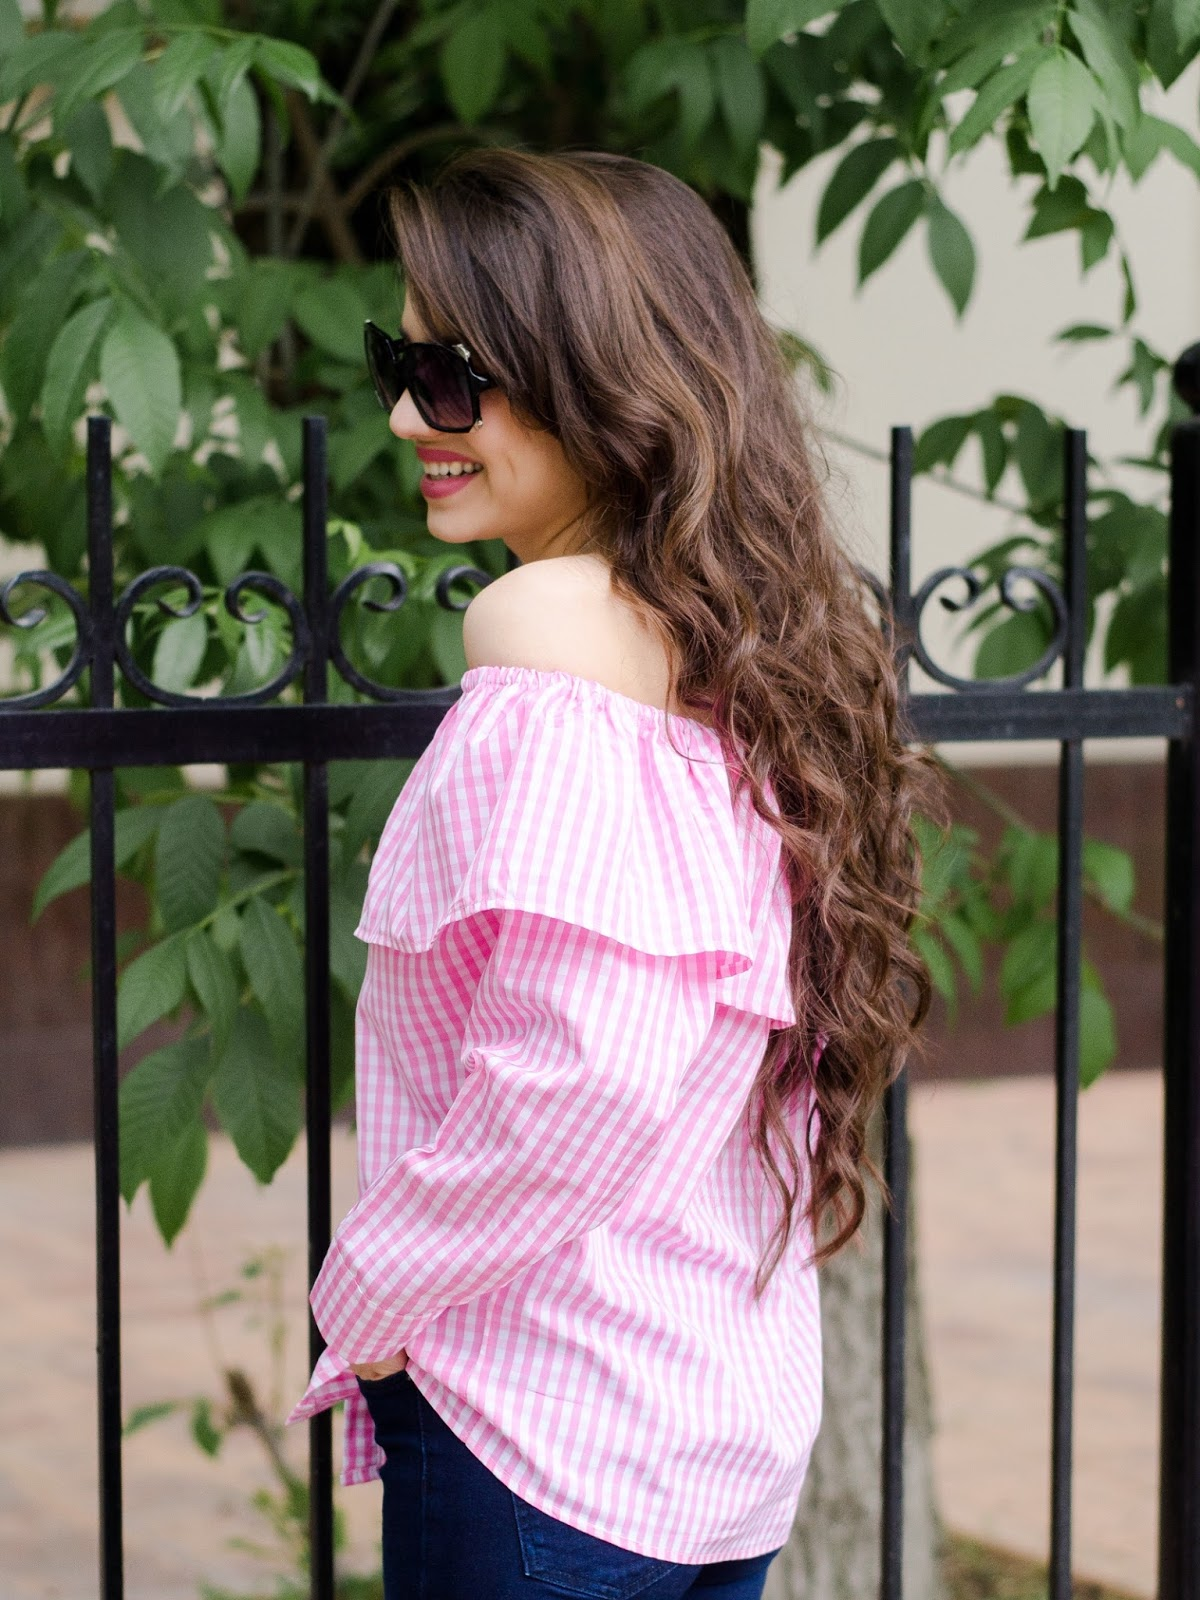 fashion blogger diyorasnotes diyora beta offshouldertop pink top michael kore bag mules asos